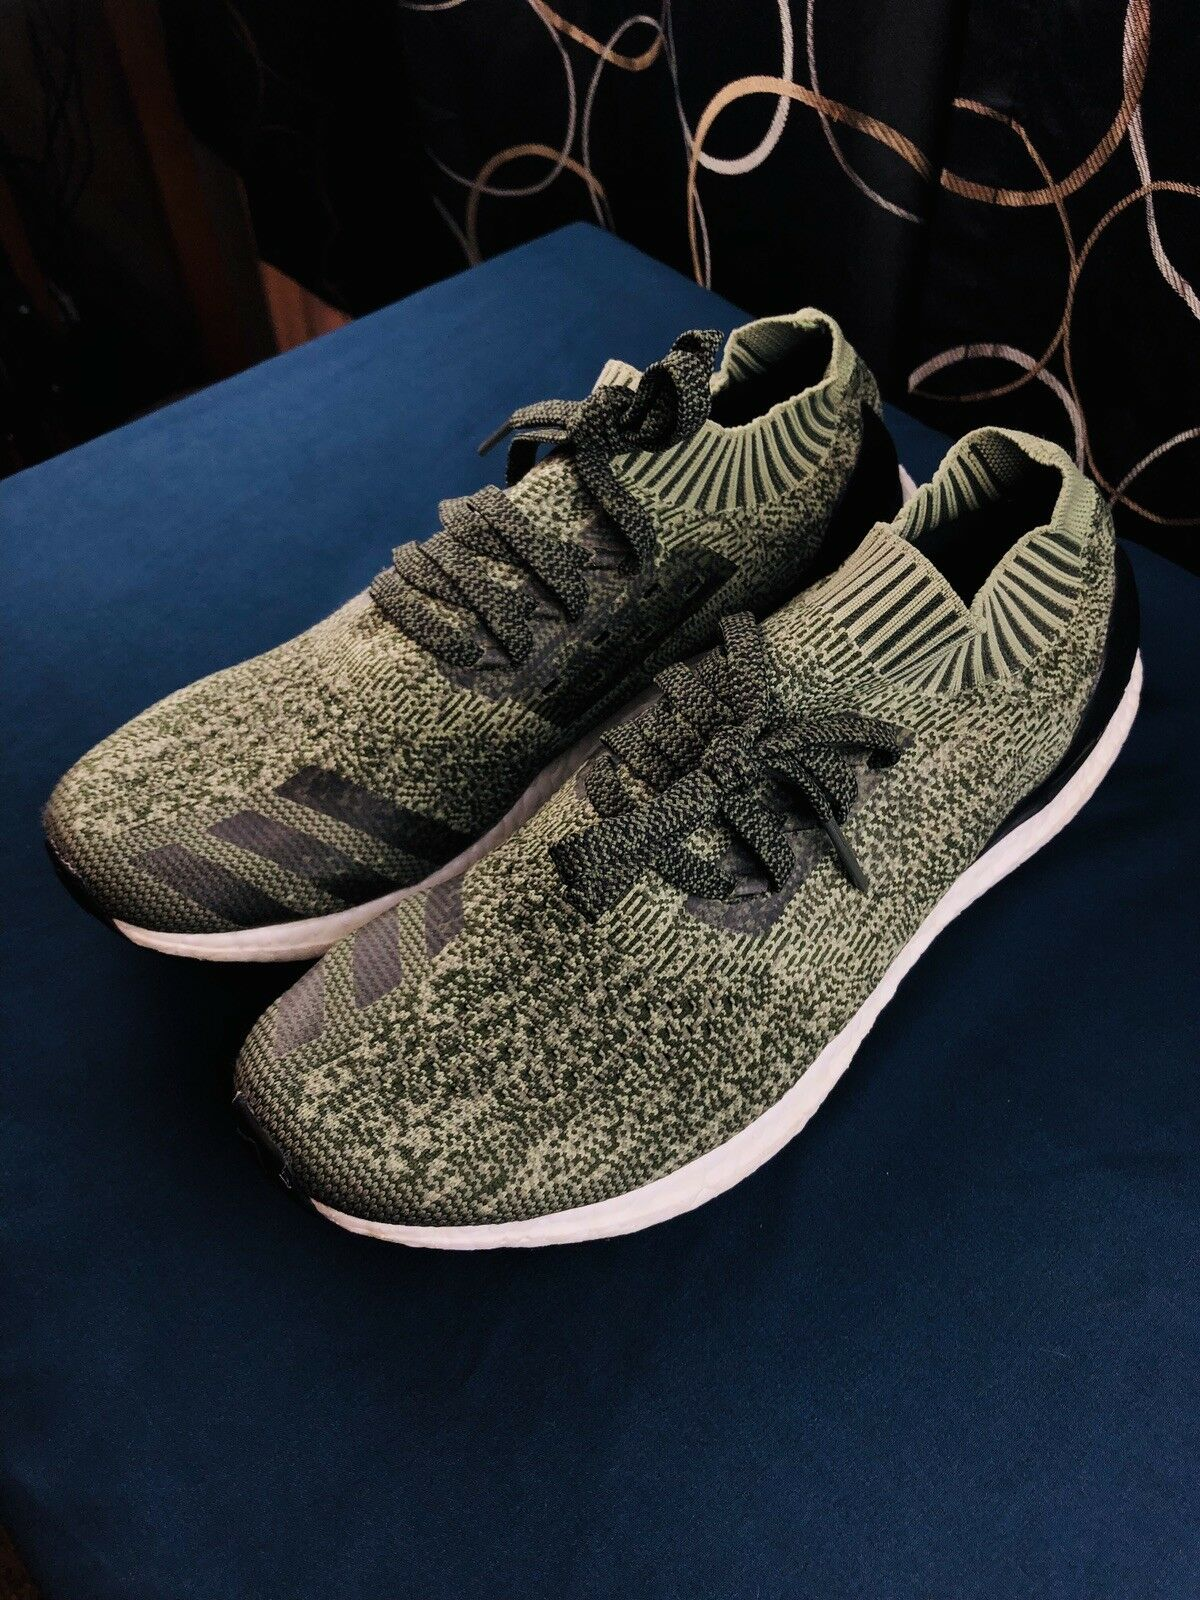 Adidas Ultra Boost Uncaged Olive Green - Mens Size 11.5 - New